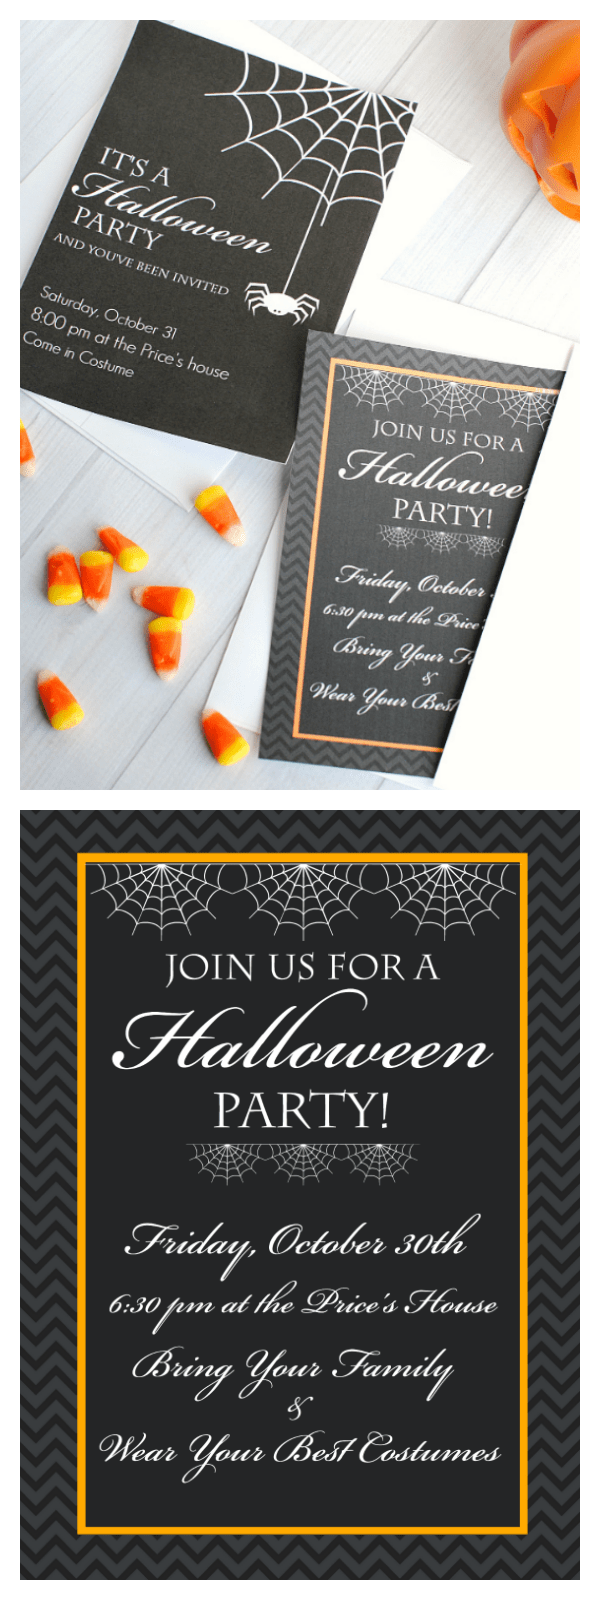 image regarding Printable Halloween Party Invitations called Lovely Absolutely free Printable Halloween Invites Entertaining-Squared